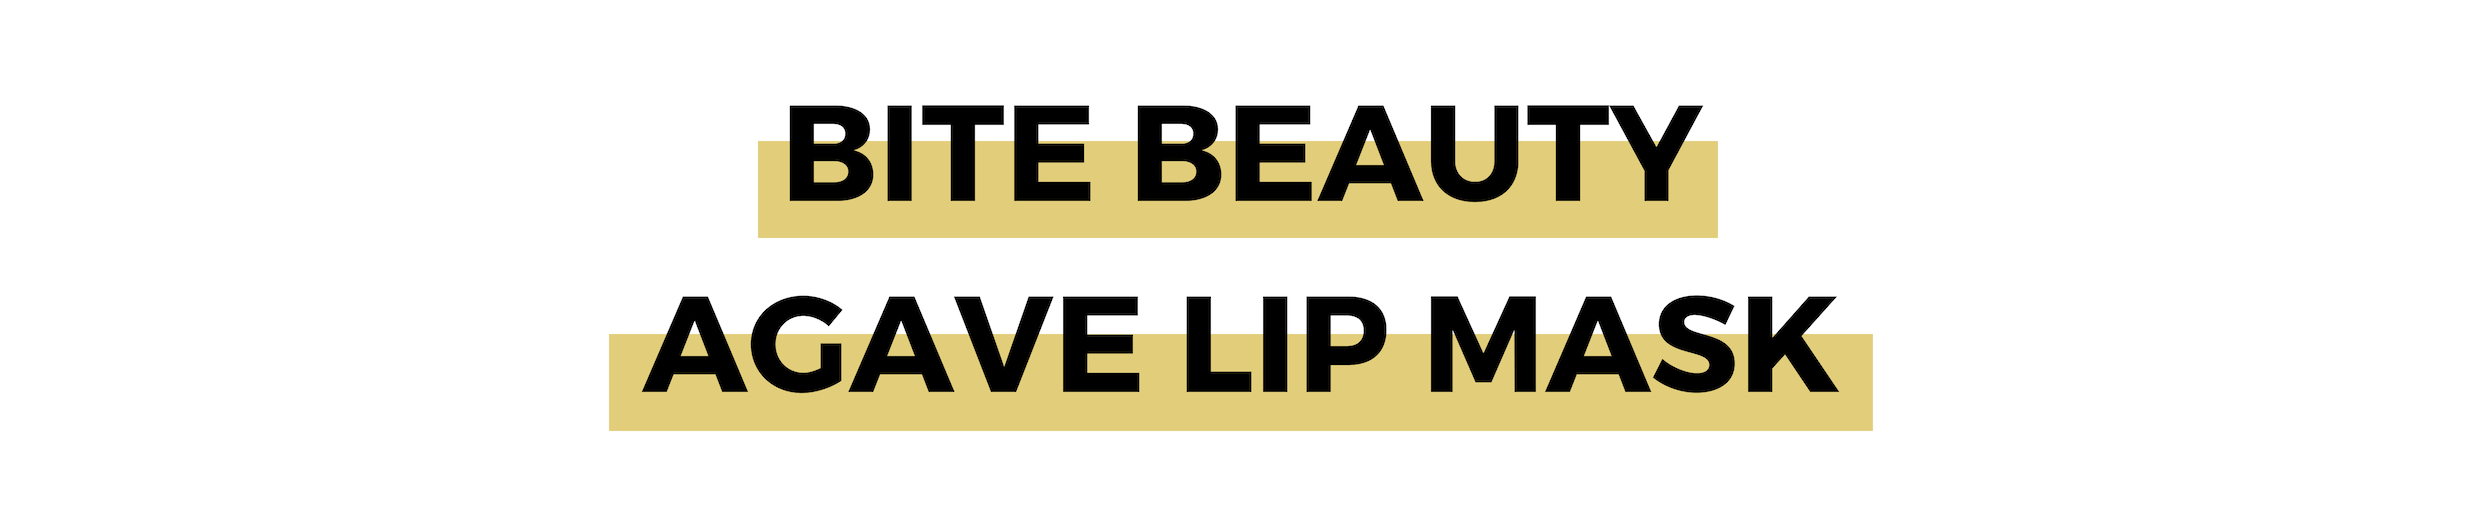 BITE BEAUTY AGAVE LIP MASK.png